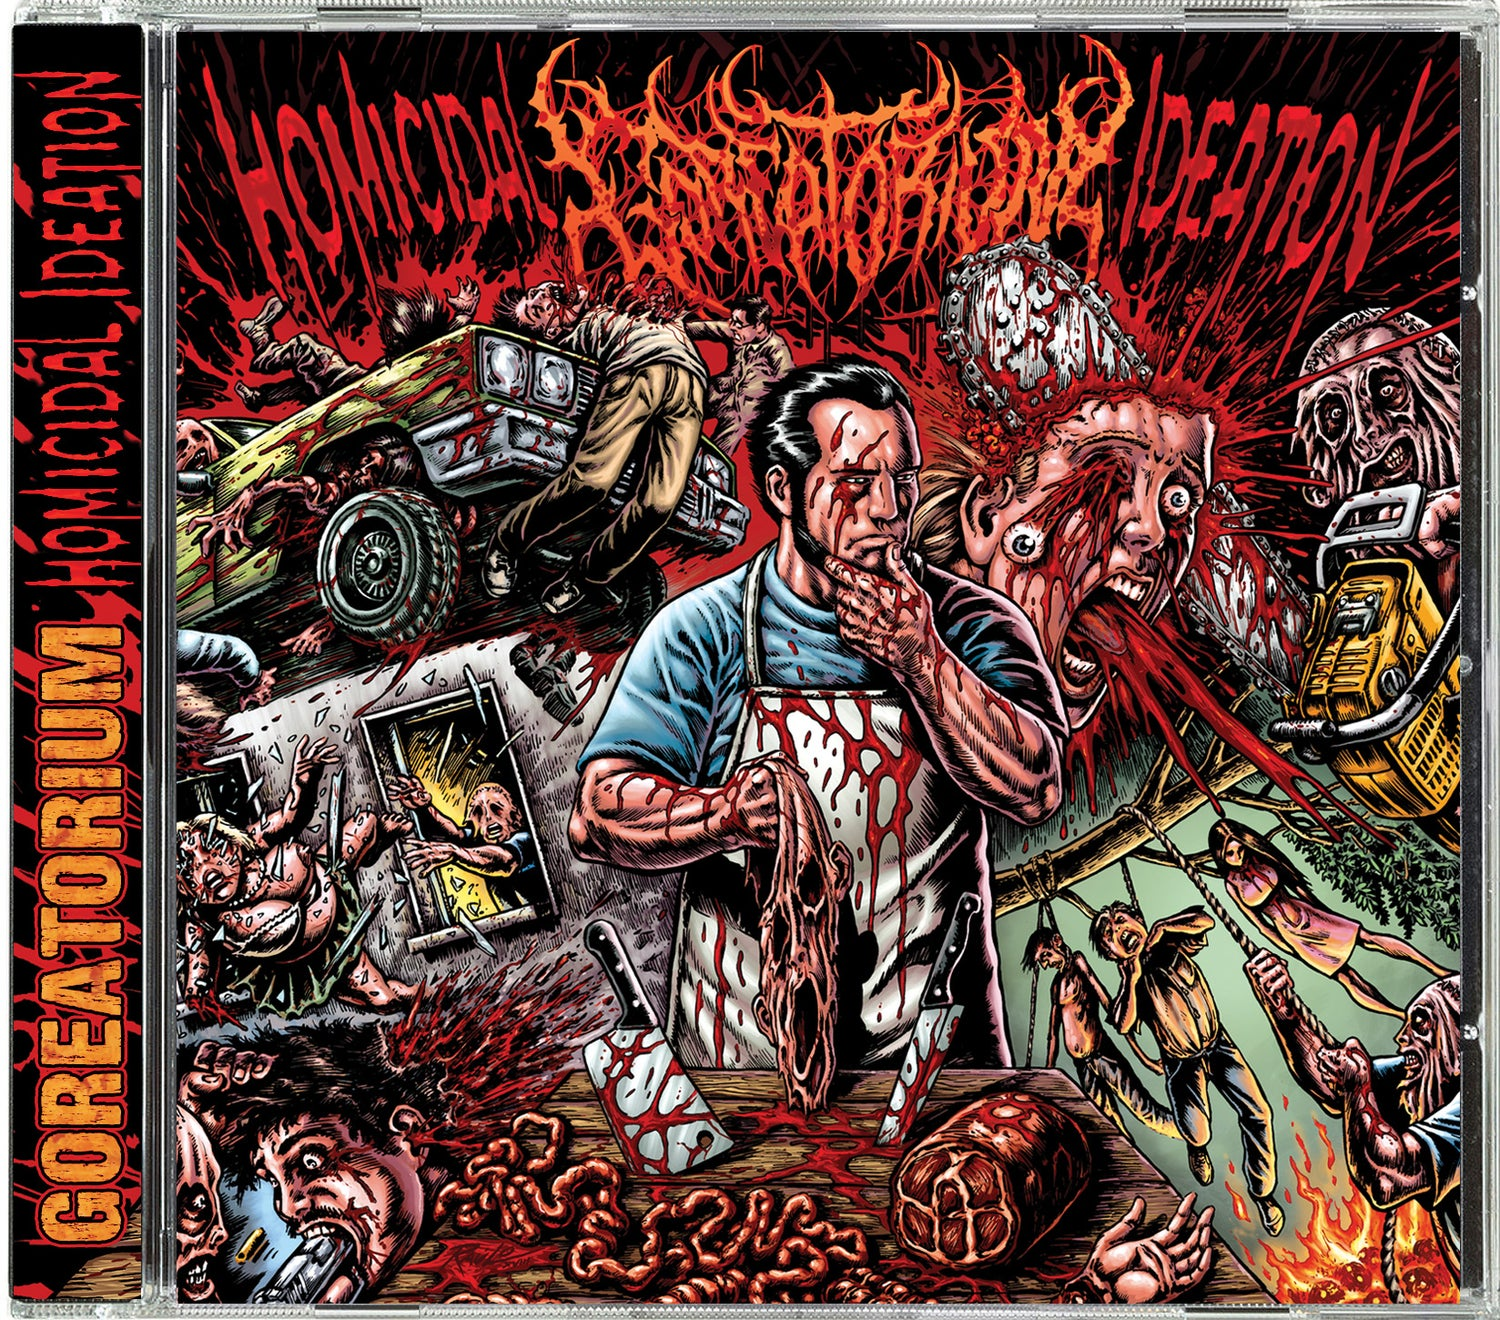 Image of Goreatorium: Homicidal Ideation CD